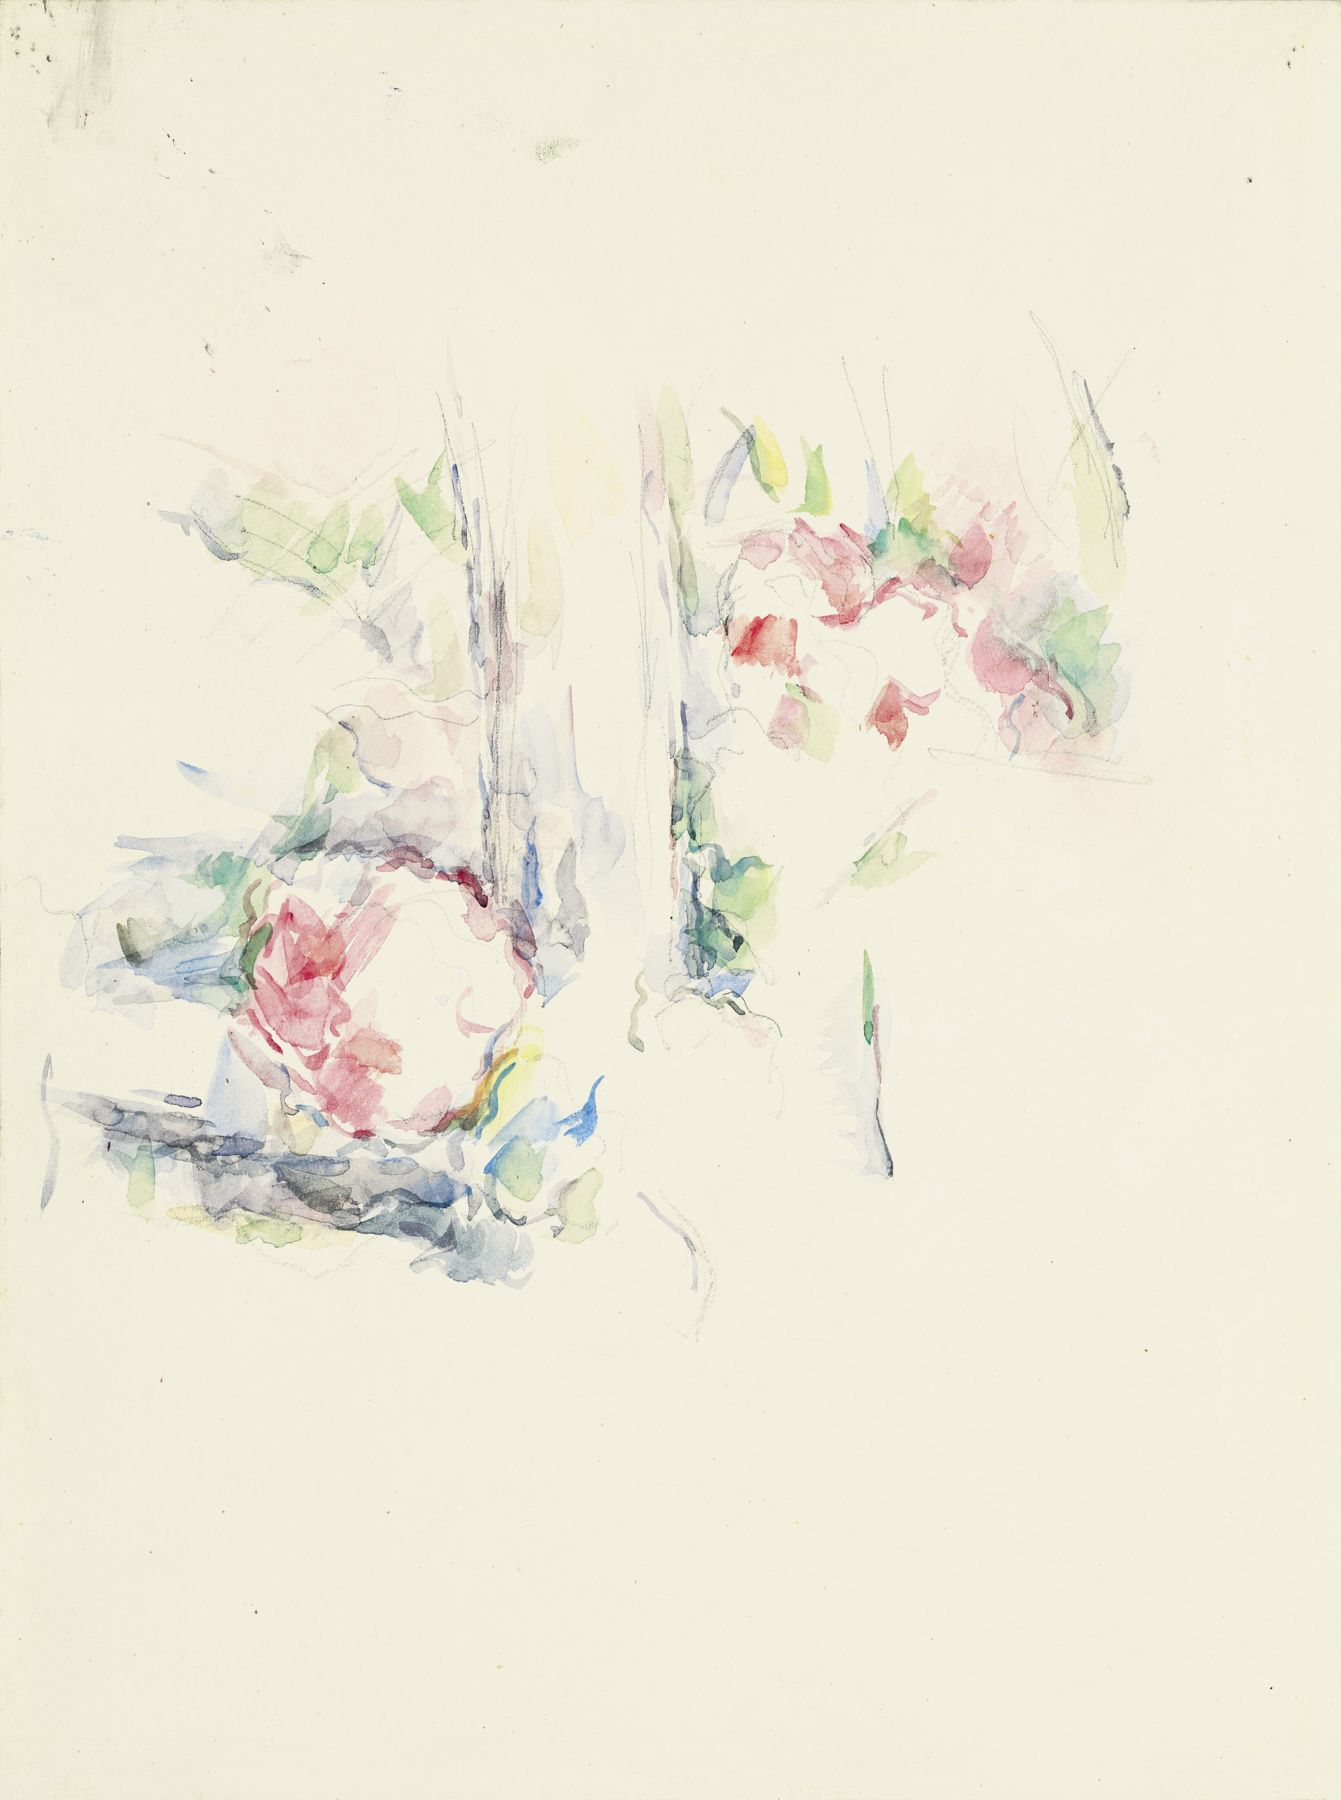 Paul Cezanne, Tronc d'arbre et fleurs, c. 1900, Watercolor and pencil on paper 16 5/8 x 12 1/2 inches